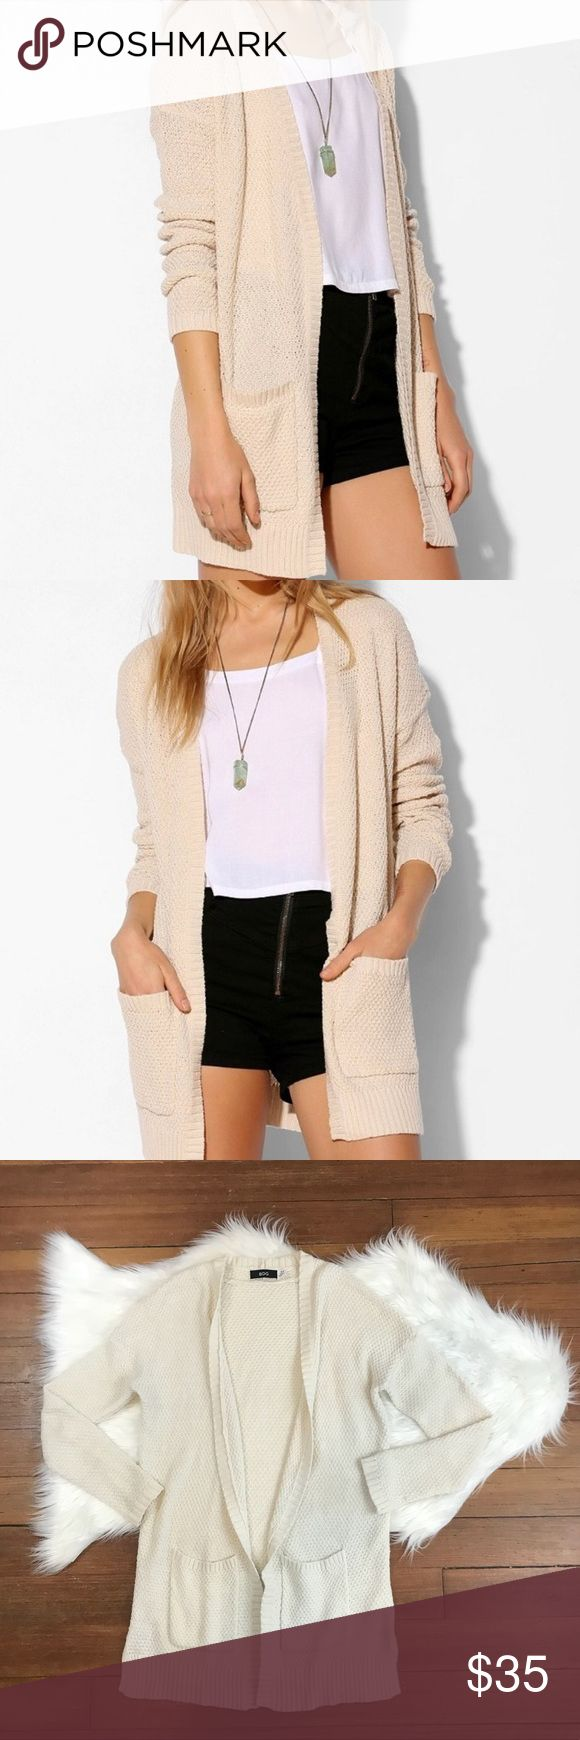 UO BDG Open Front Cream Knit Pocket Cardigan Urban Outfitters BDG Cream Knit Cardigan. Open front design with 2 pockets. Versatile & perfect with any ensemble. Size S. In excellent condition, no holes, stains, etc. Open to offers. Bundle your likes and I'll send you an extra discounted offer! Urban Outfitters Sweaters Cardigans